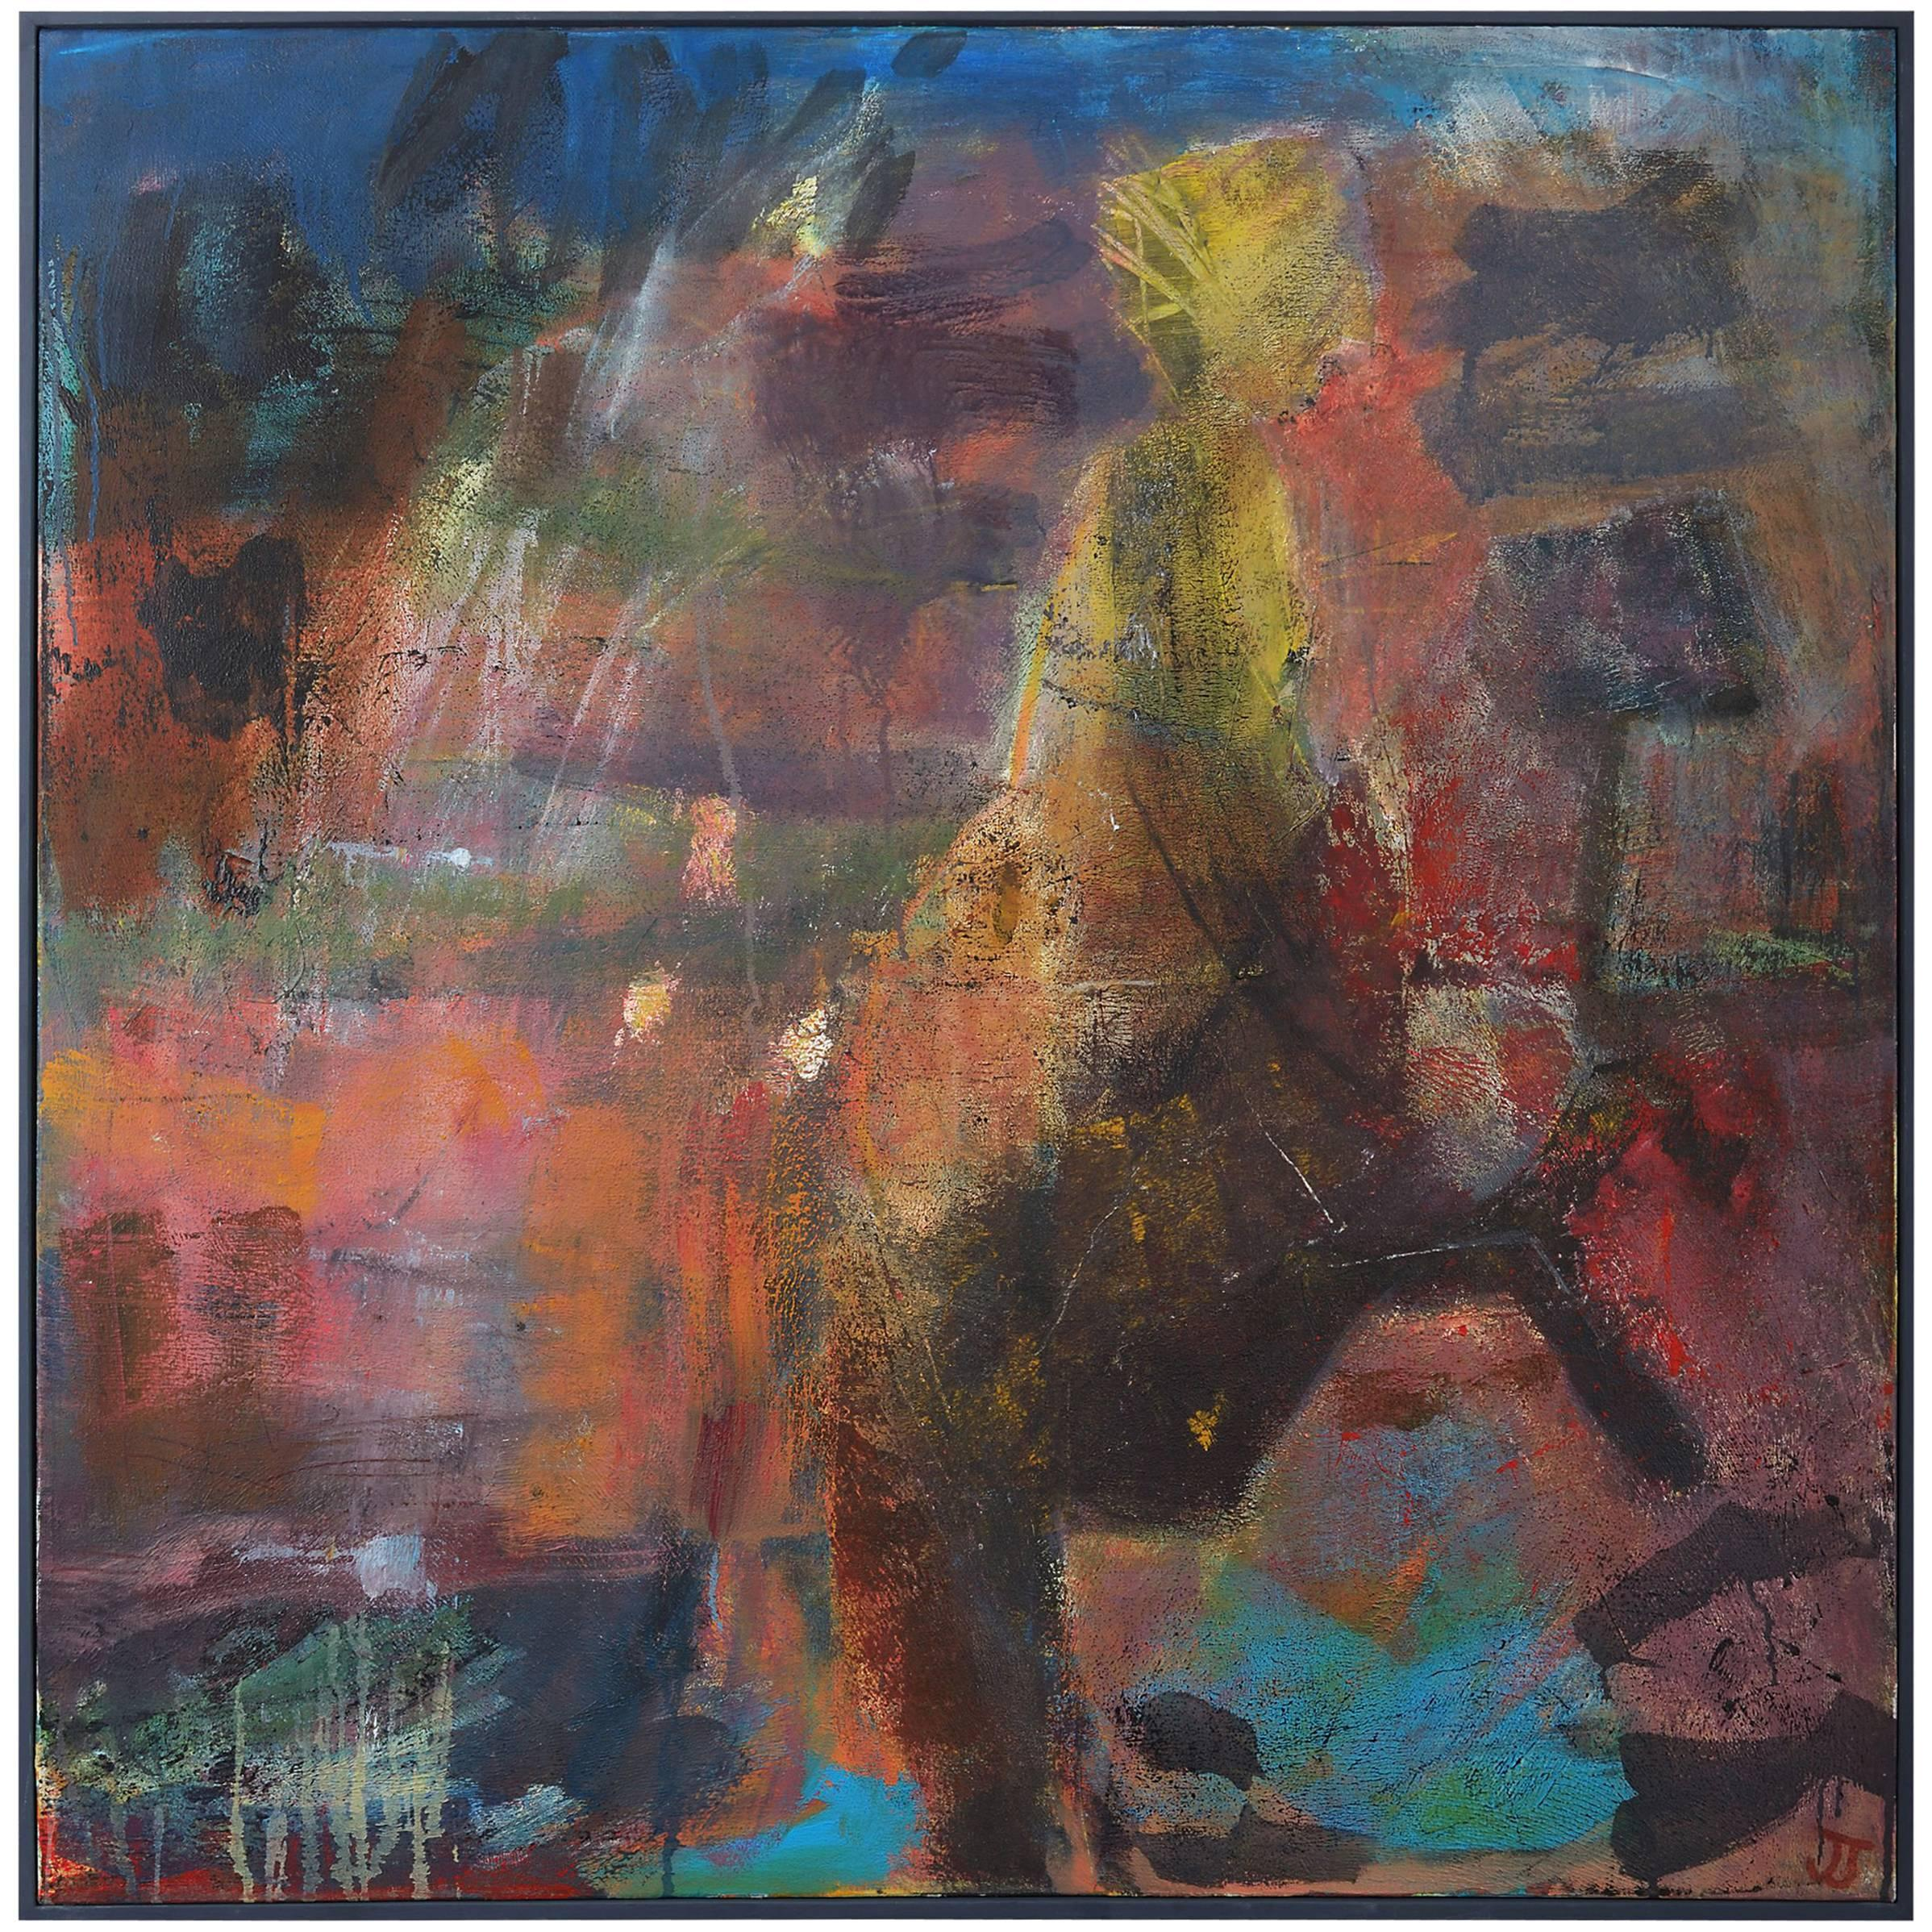 'She Rides' Painting by Jessica Taylor, Acrylic on canvas